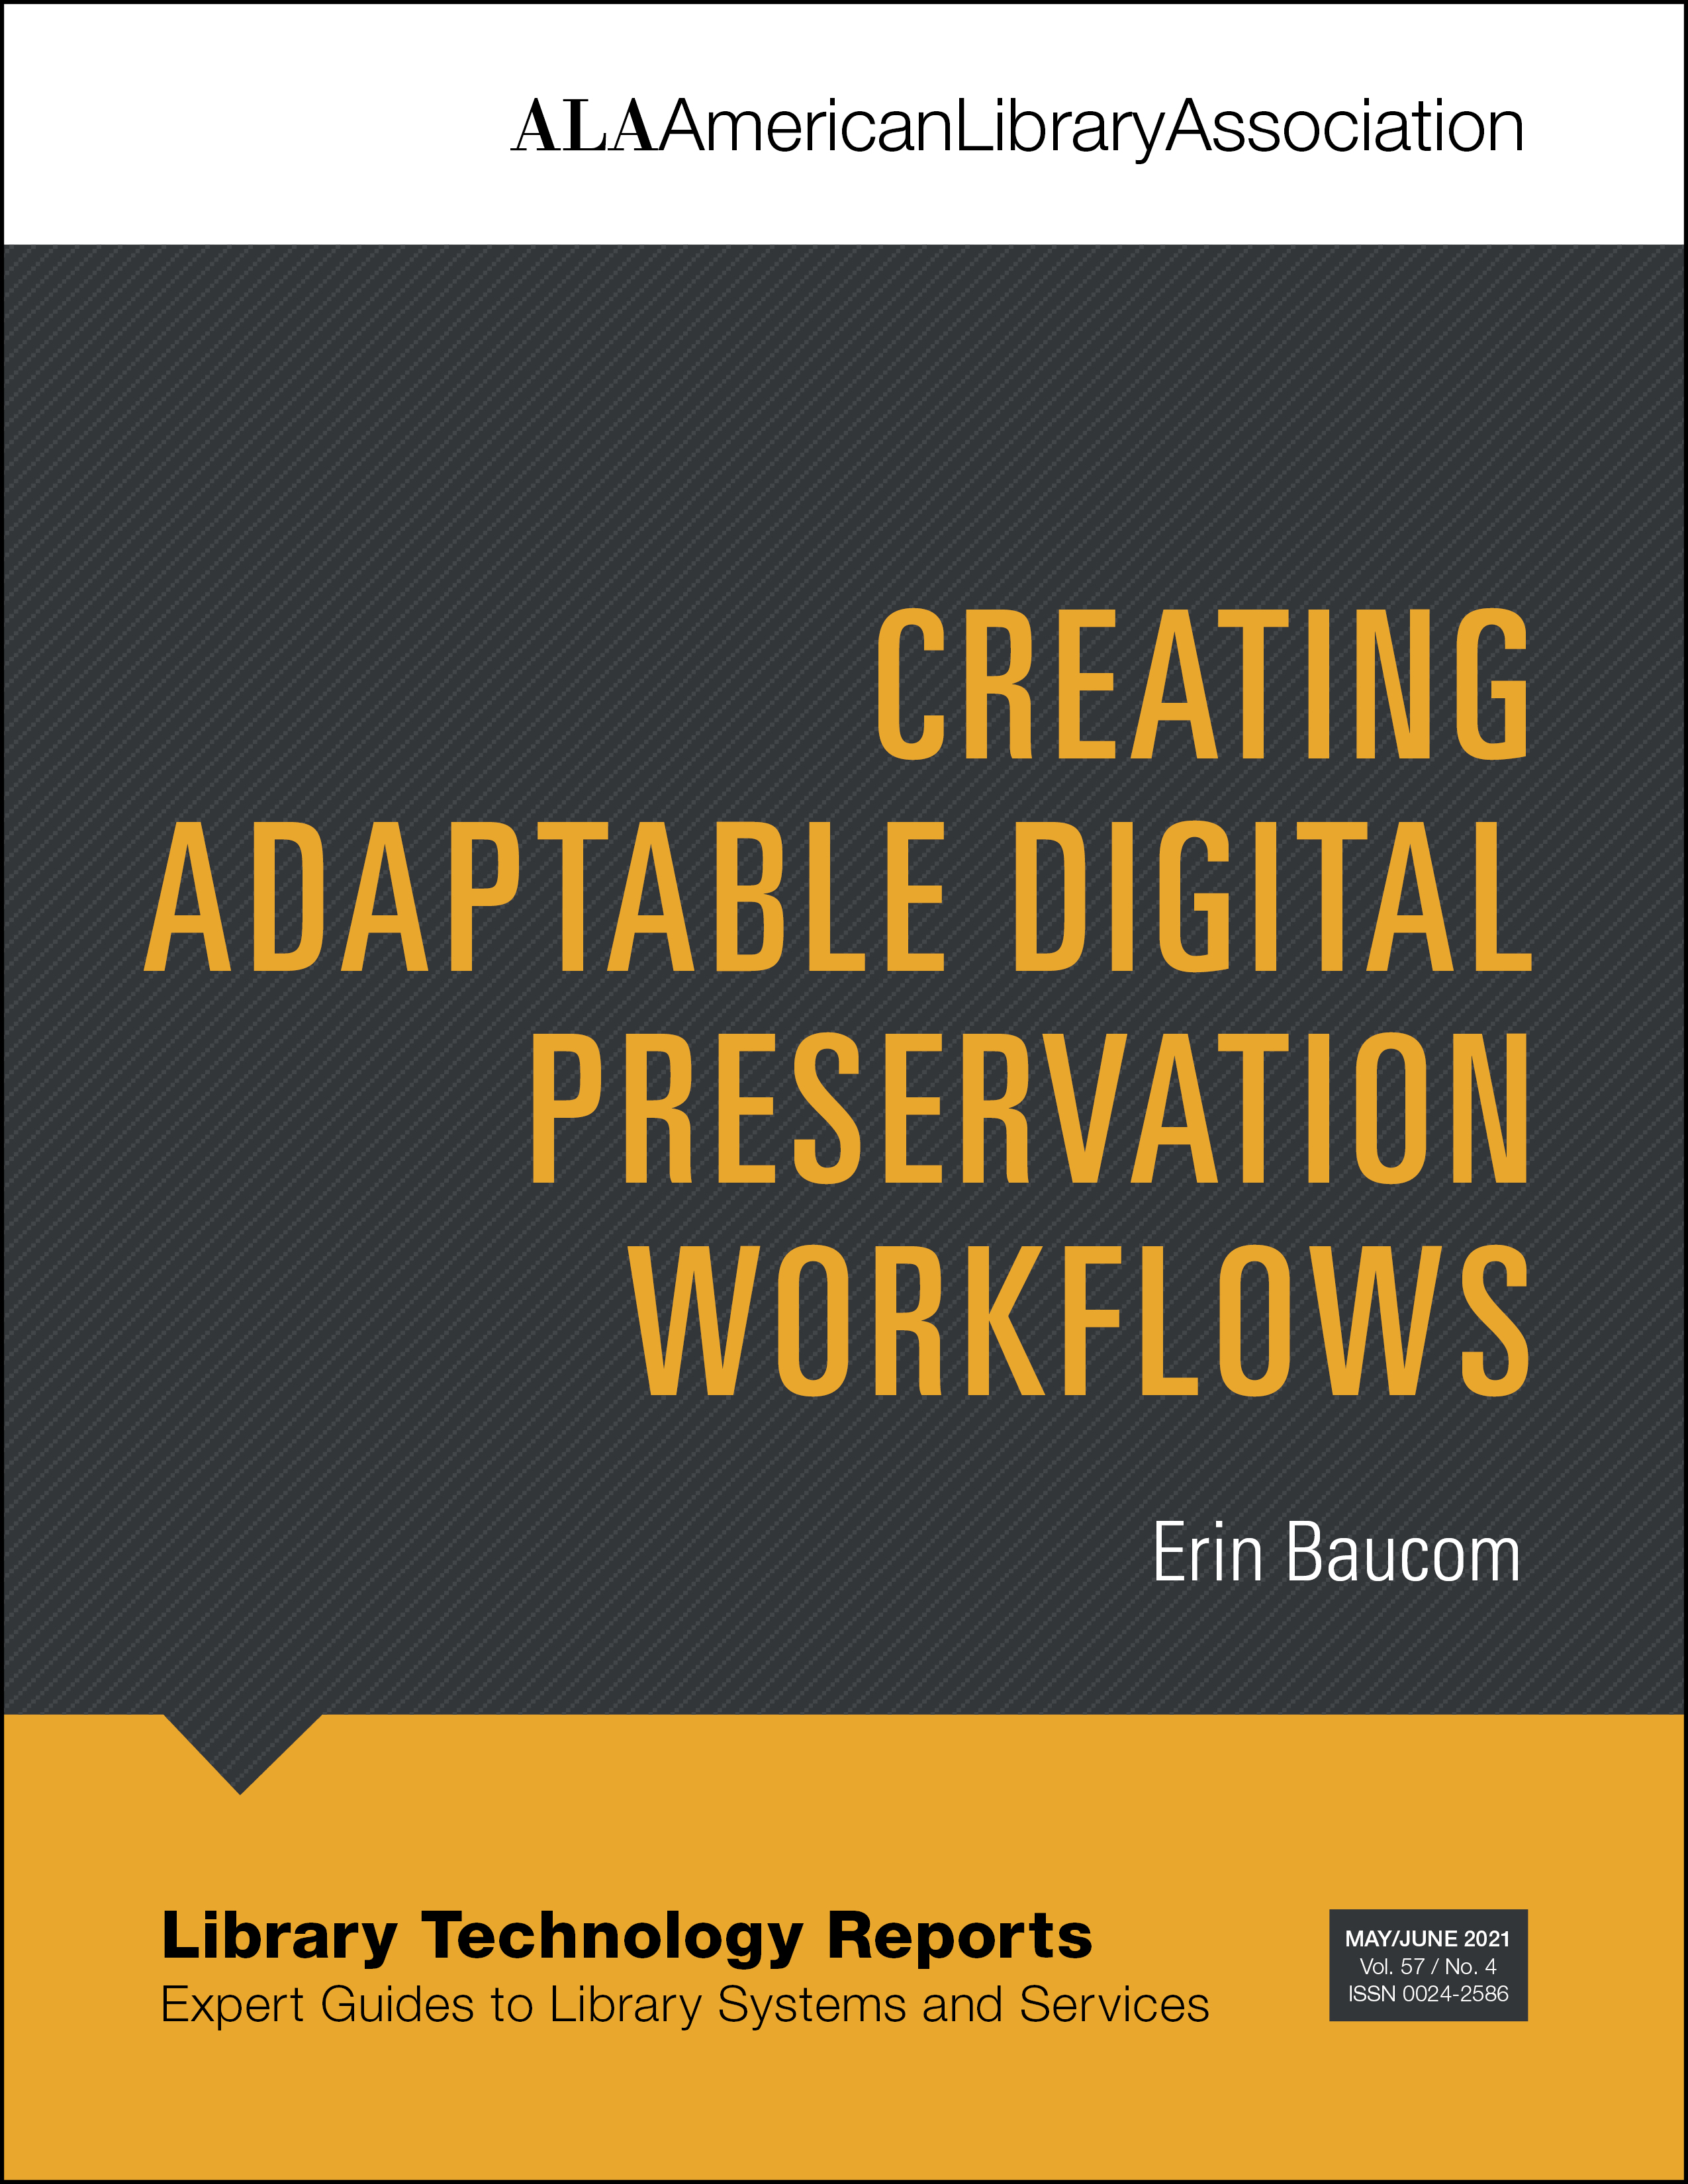 Image for Creating Adaptable Digital Preservation Workflows